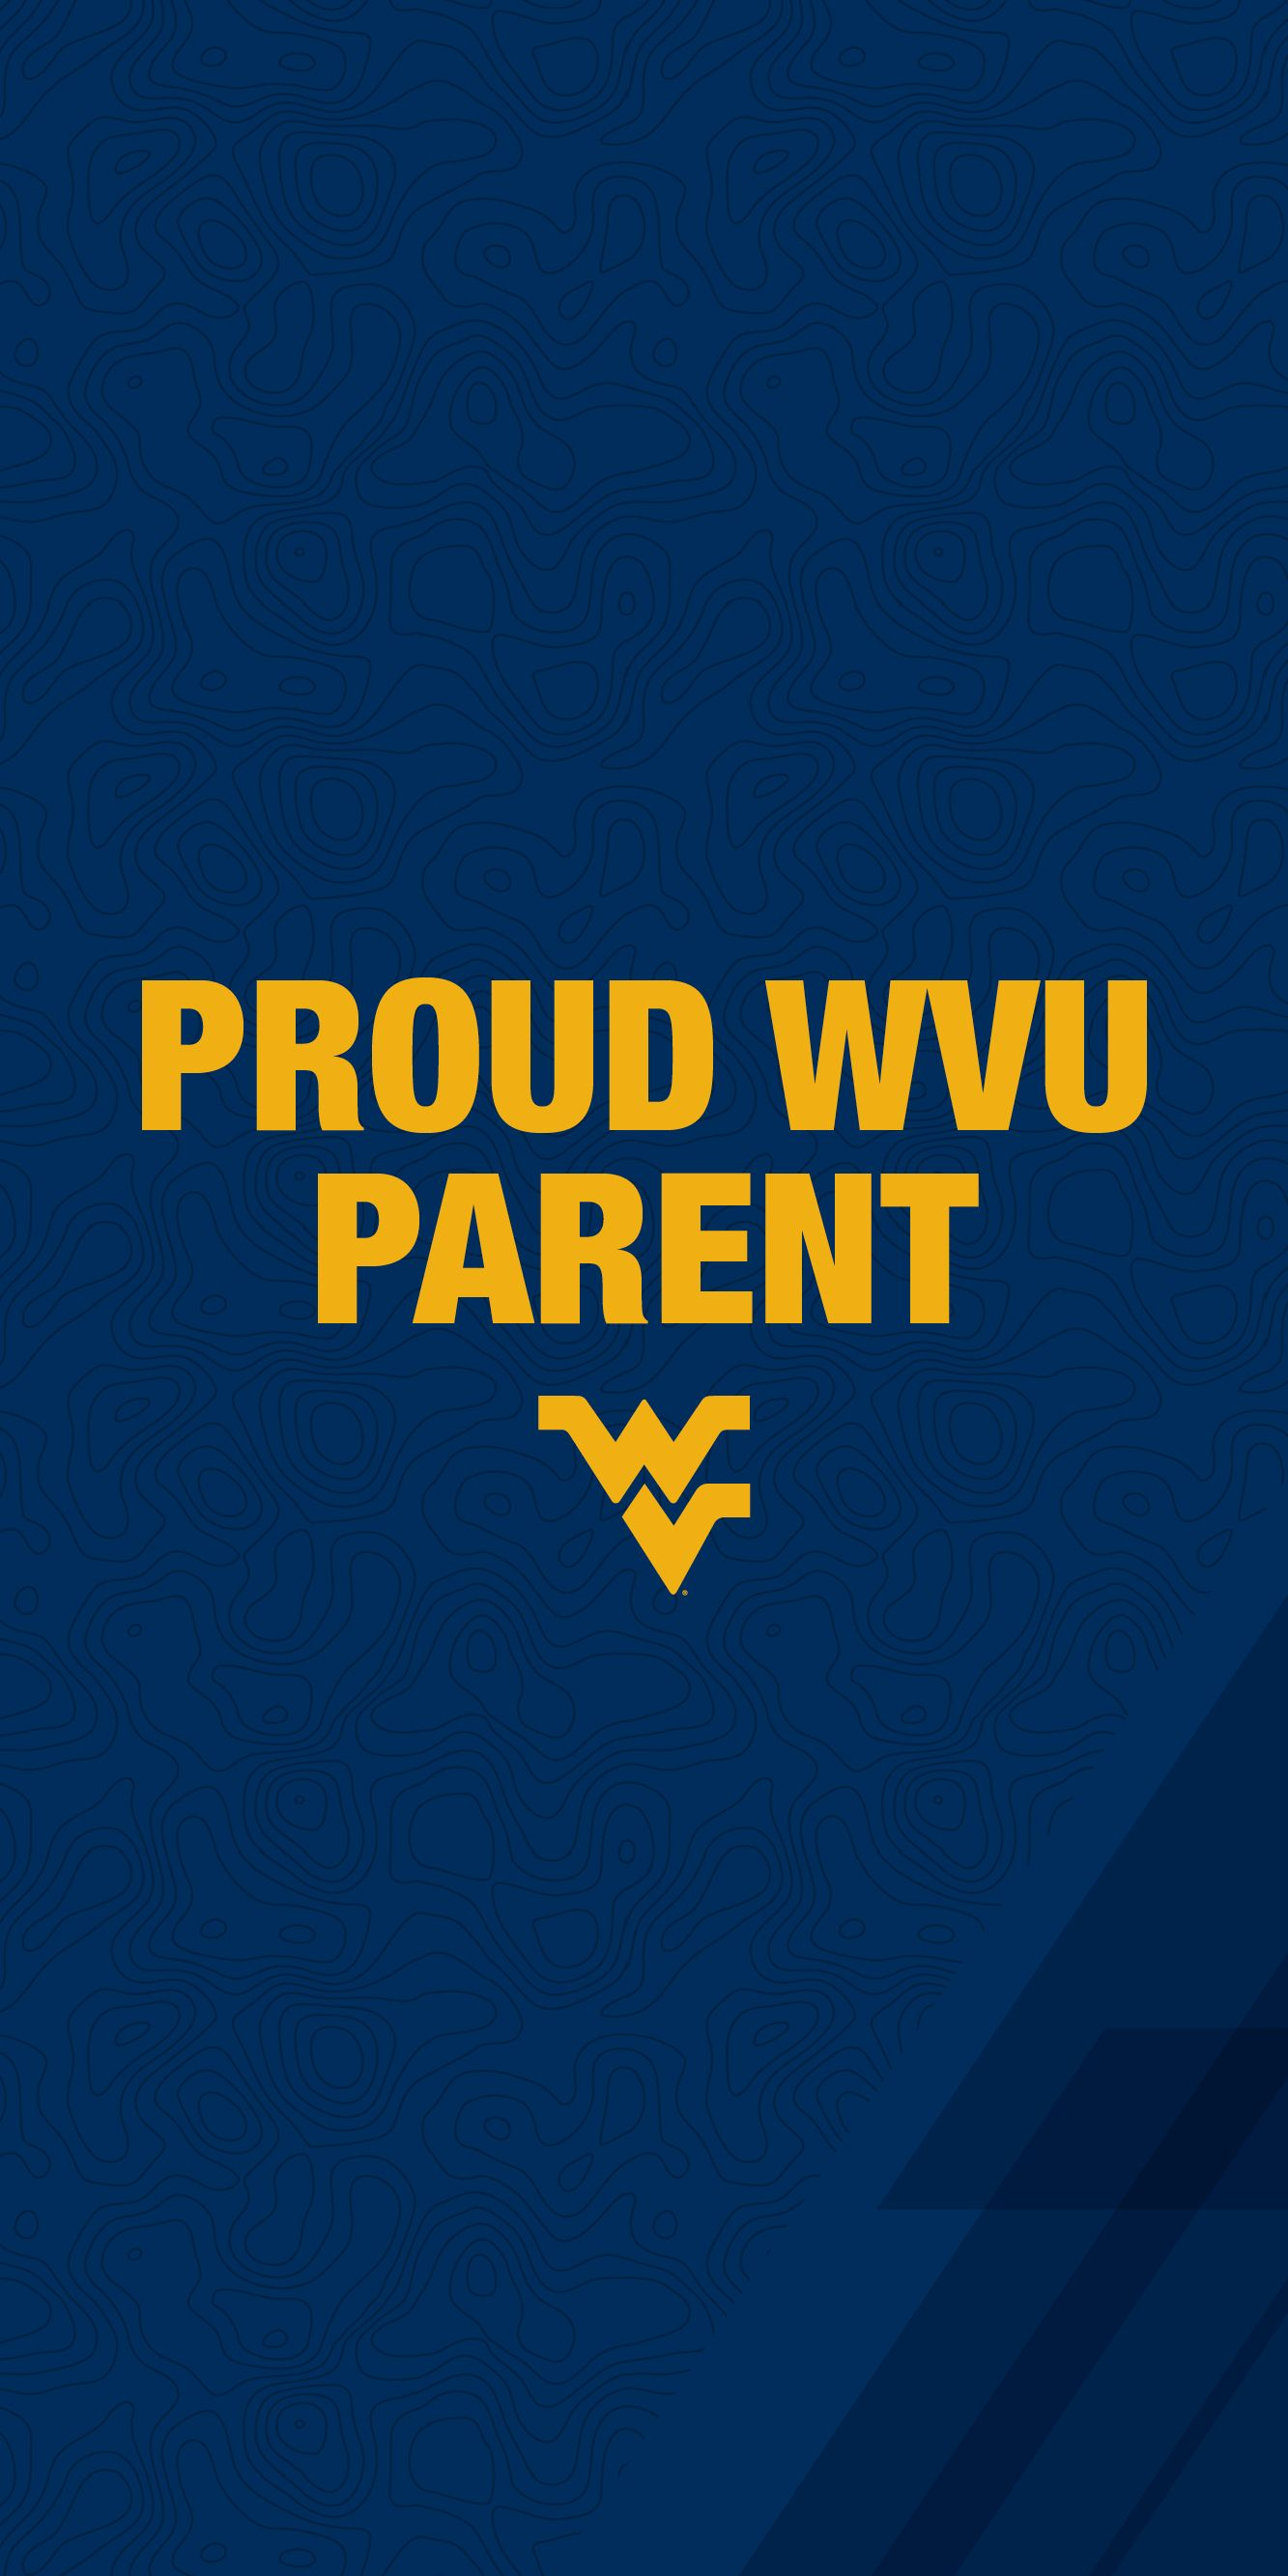 Proud WVU Parent mobile wallpaper